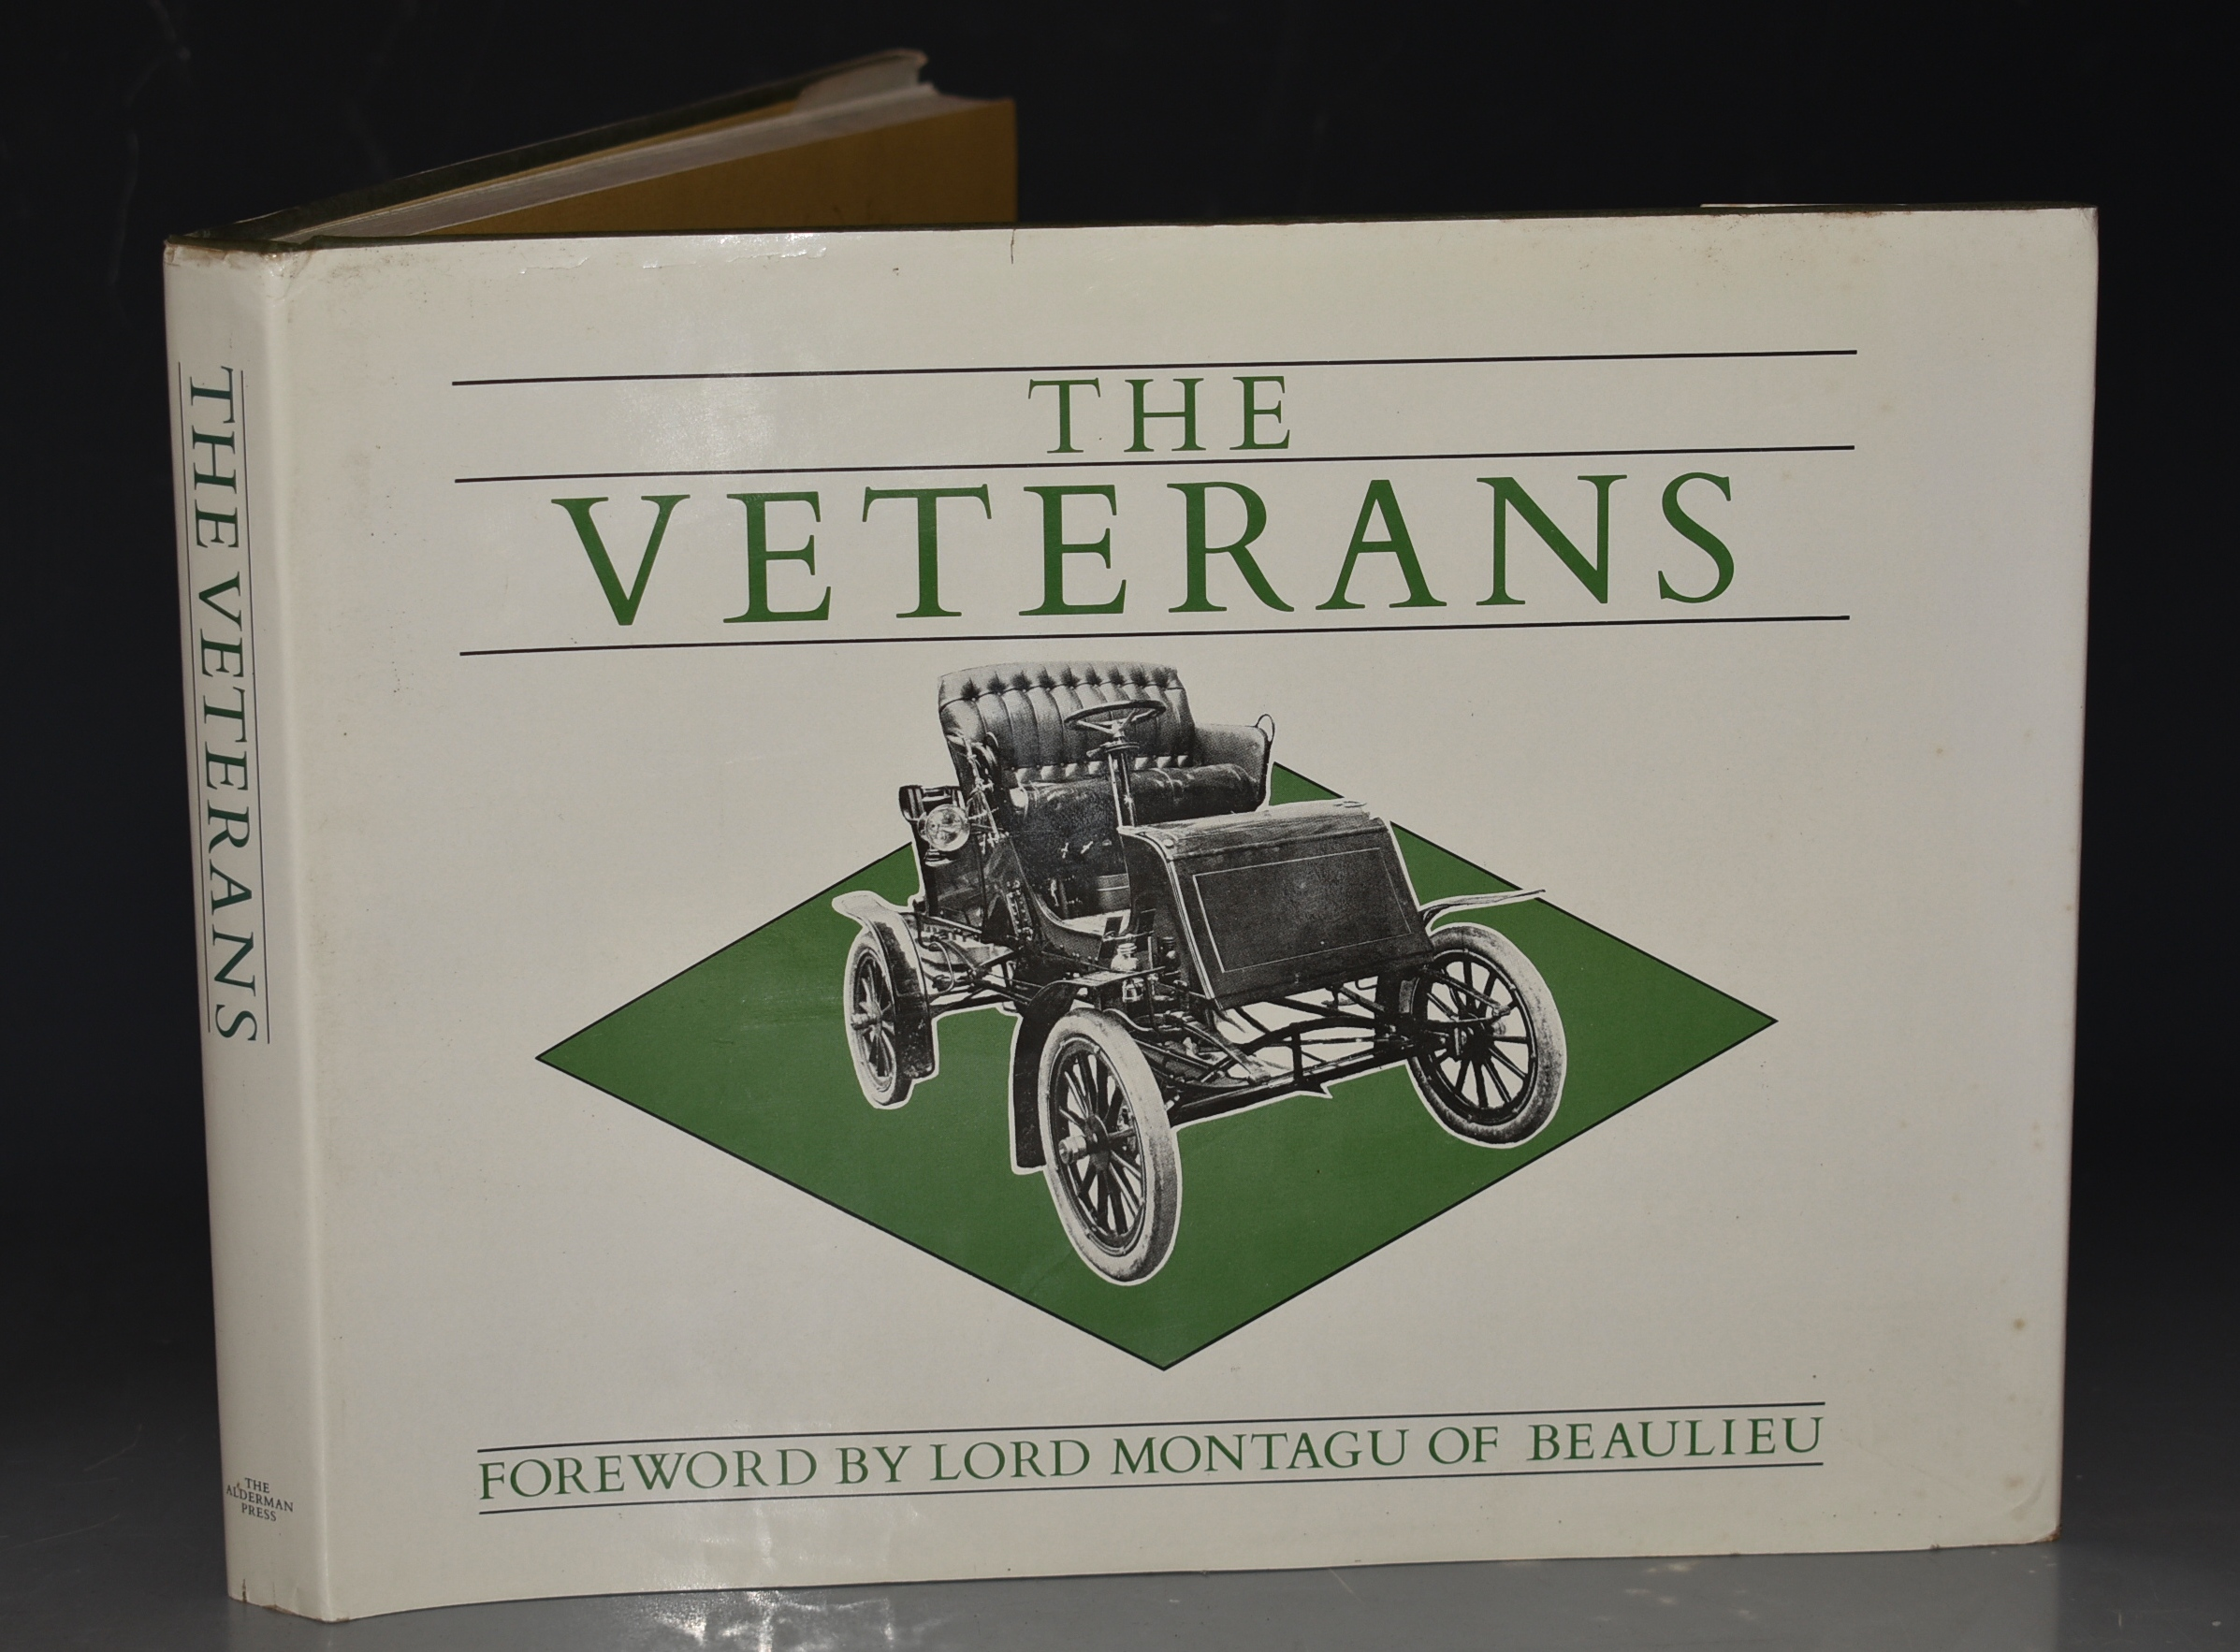 Image for The Veterans Foreword by Lord Montagu of Beulieu. Introduction by Bob Currie.